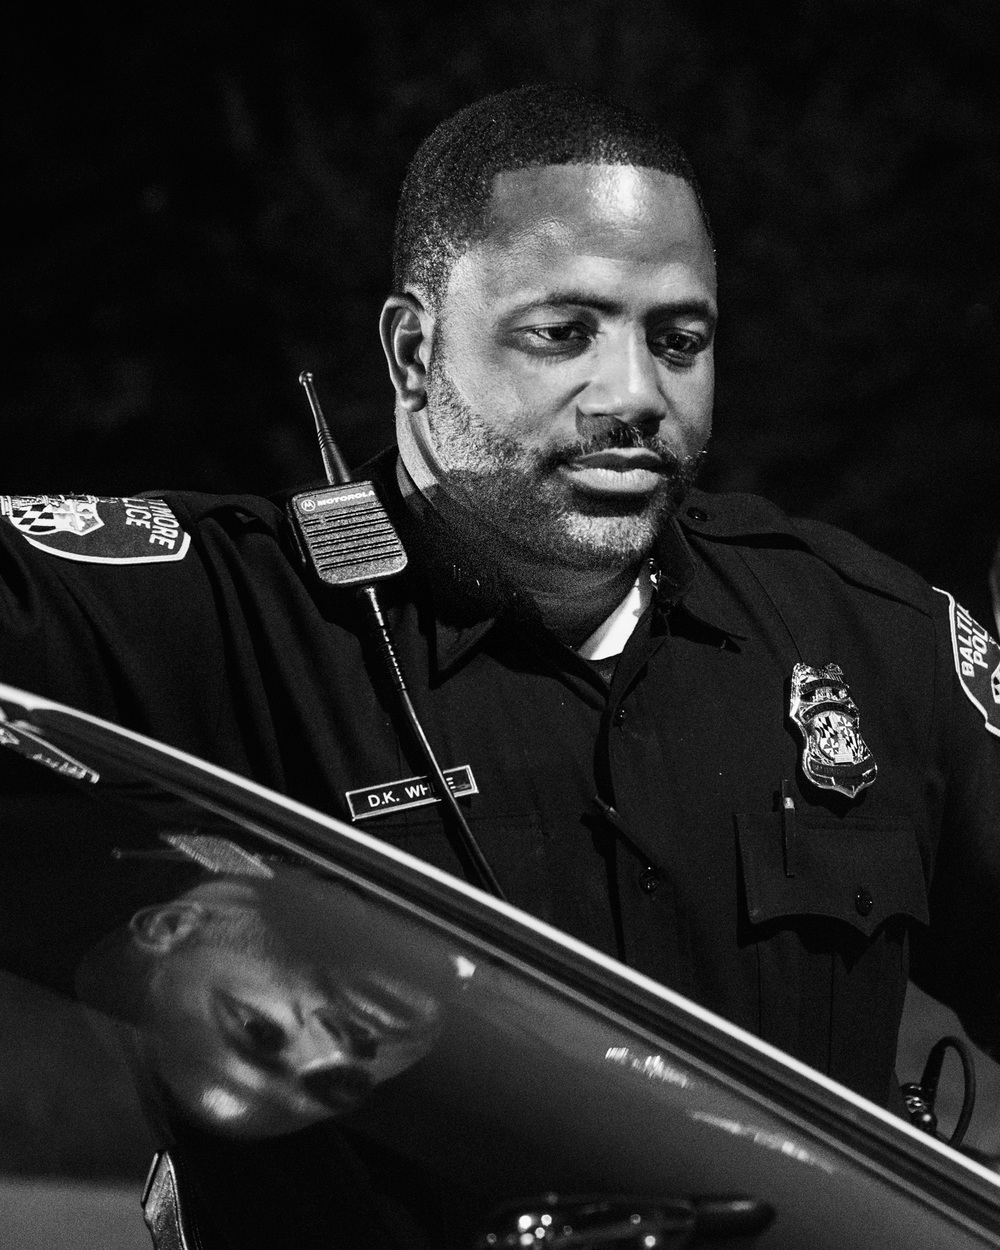 Officer D.K. White